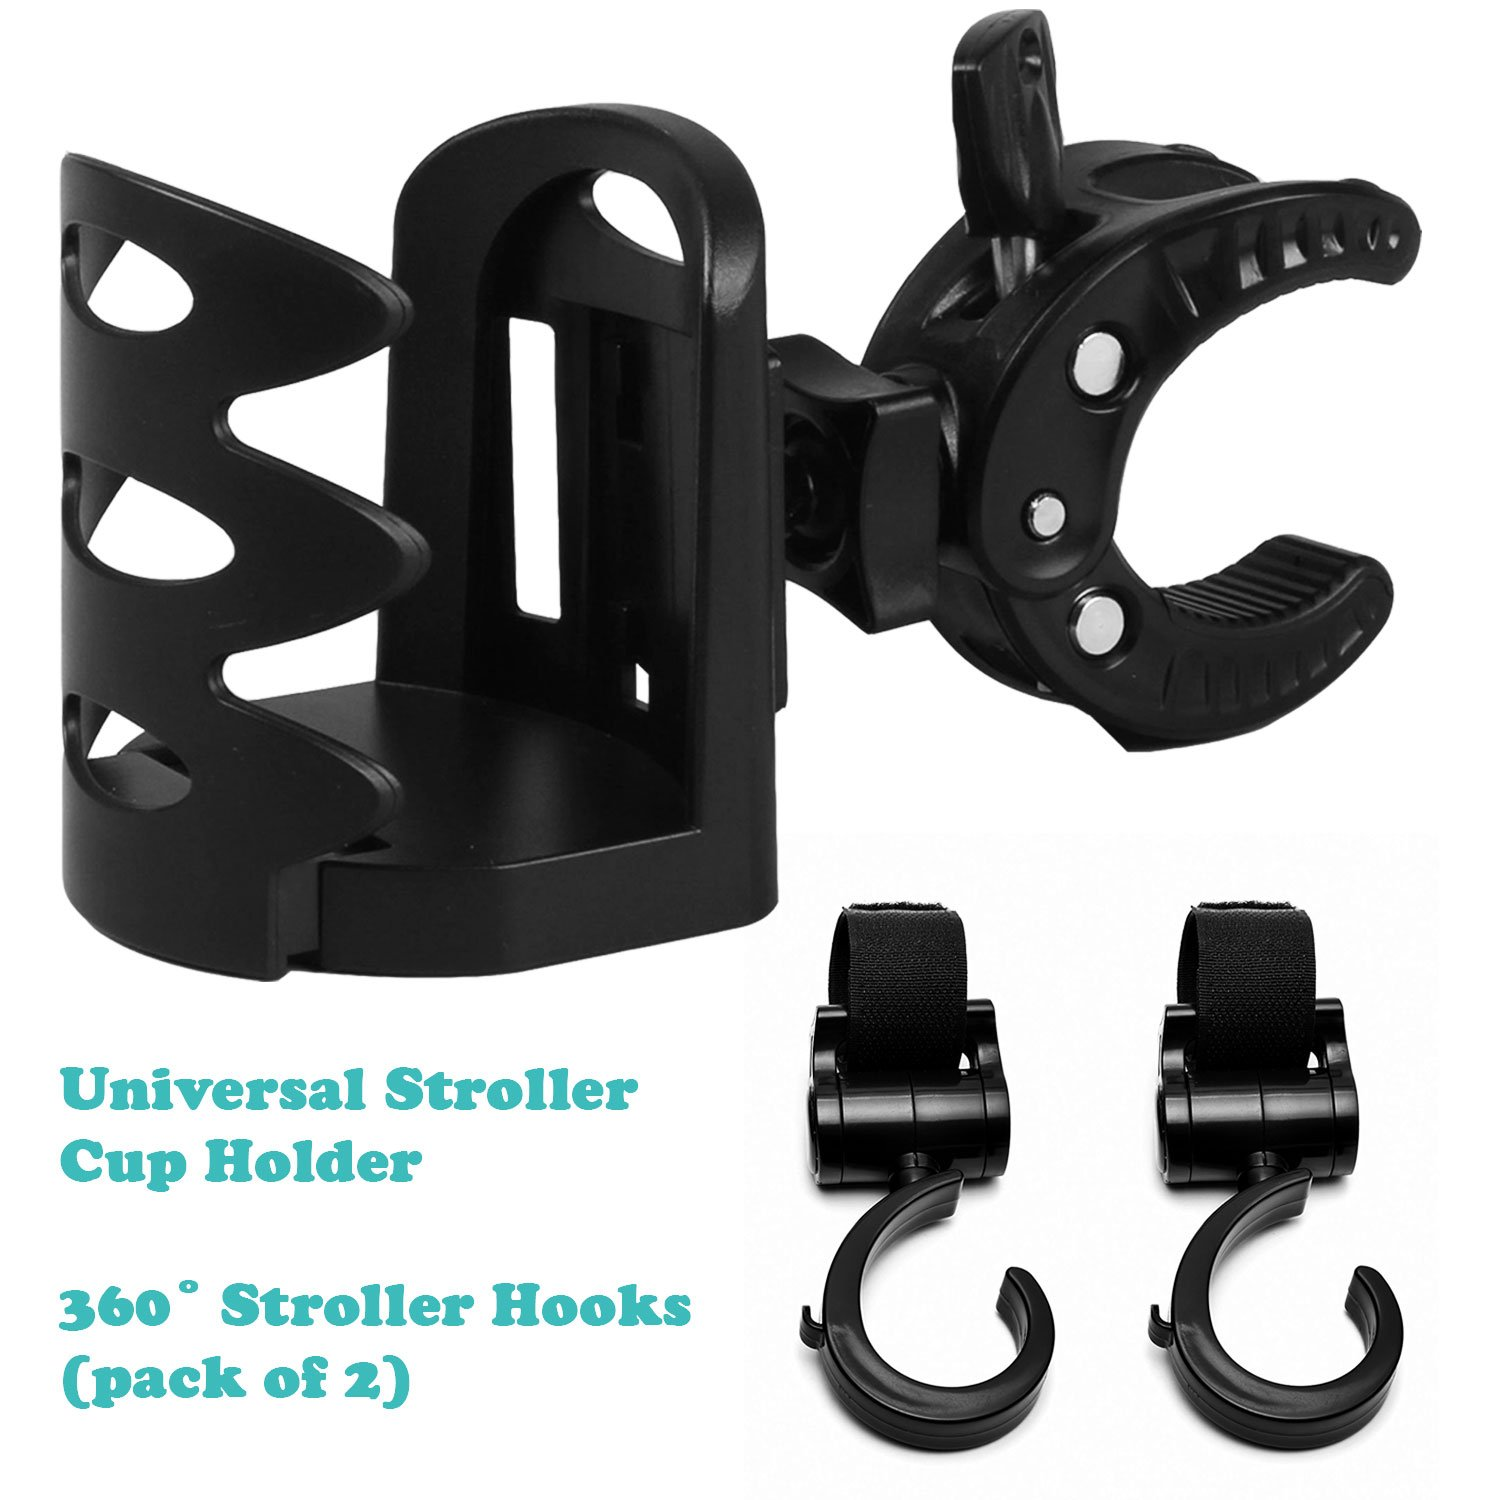 Launch Sale 70% Off - Premium Universal Cup Holder and Stroller Hooks (2) - 360 Degree Rotation - Wheelchair, Bike, Push Chair Bottle Holder and Heavy Duty Hooks